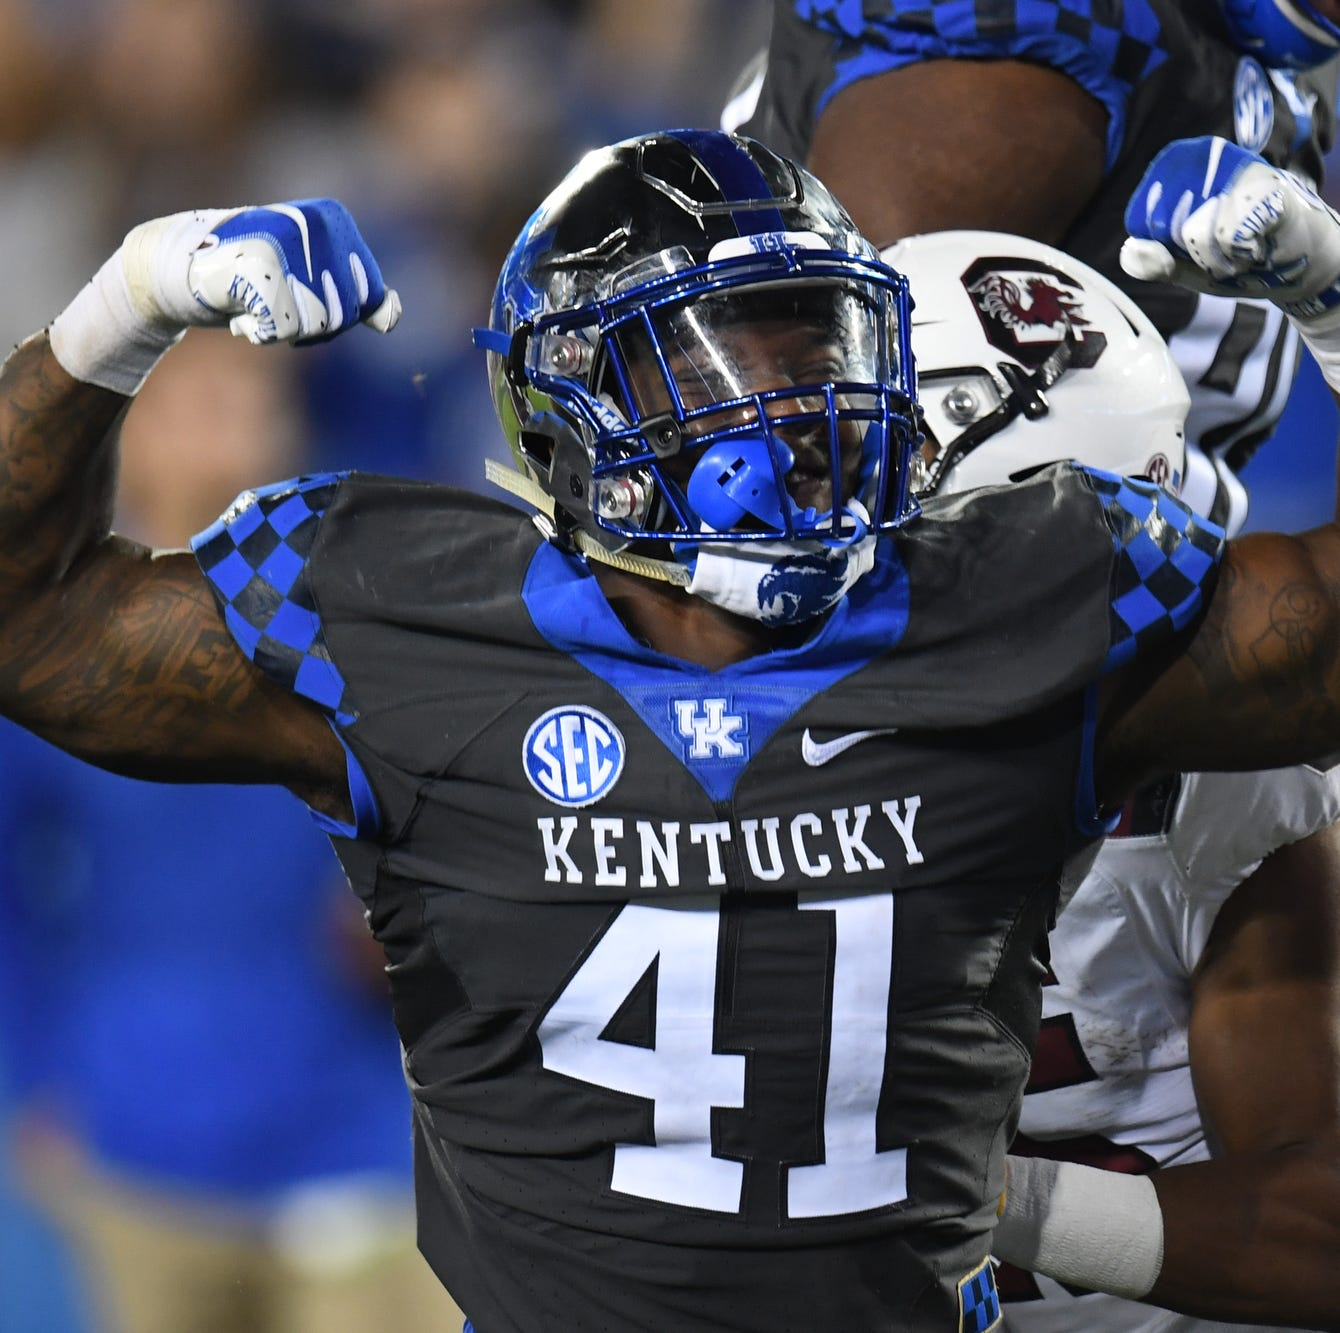 Kentucky football's defense is among the nation's stingiest